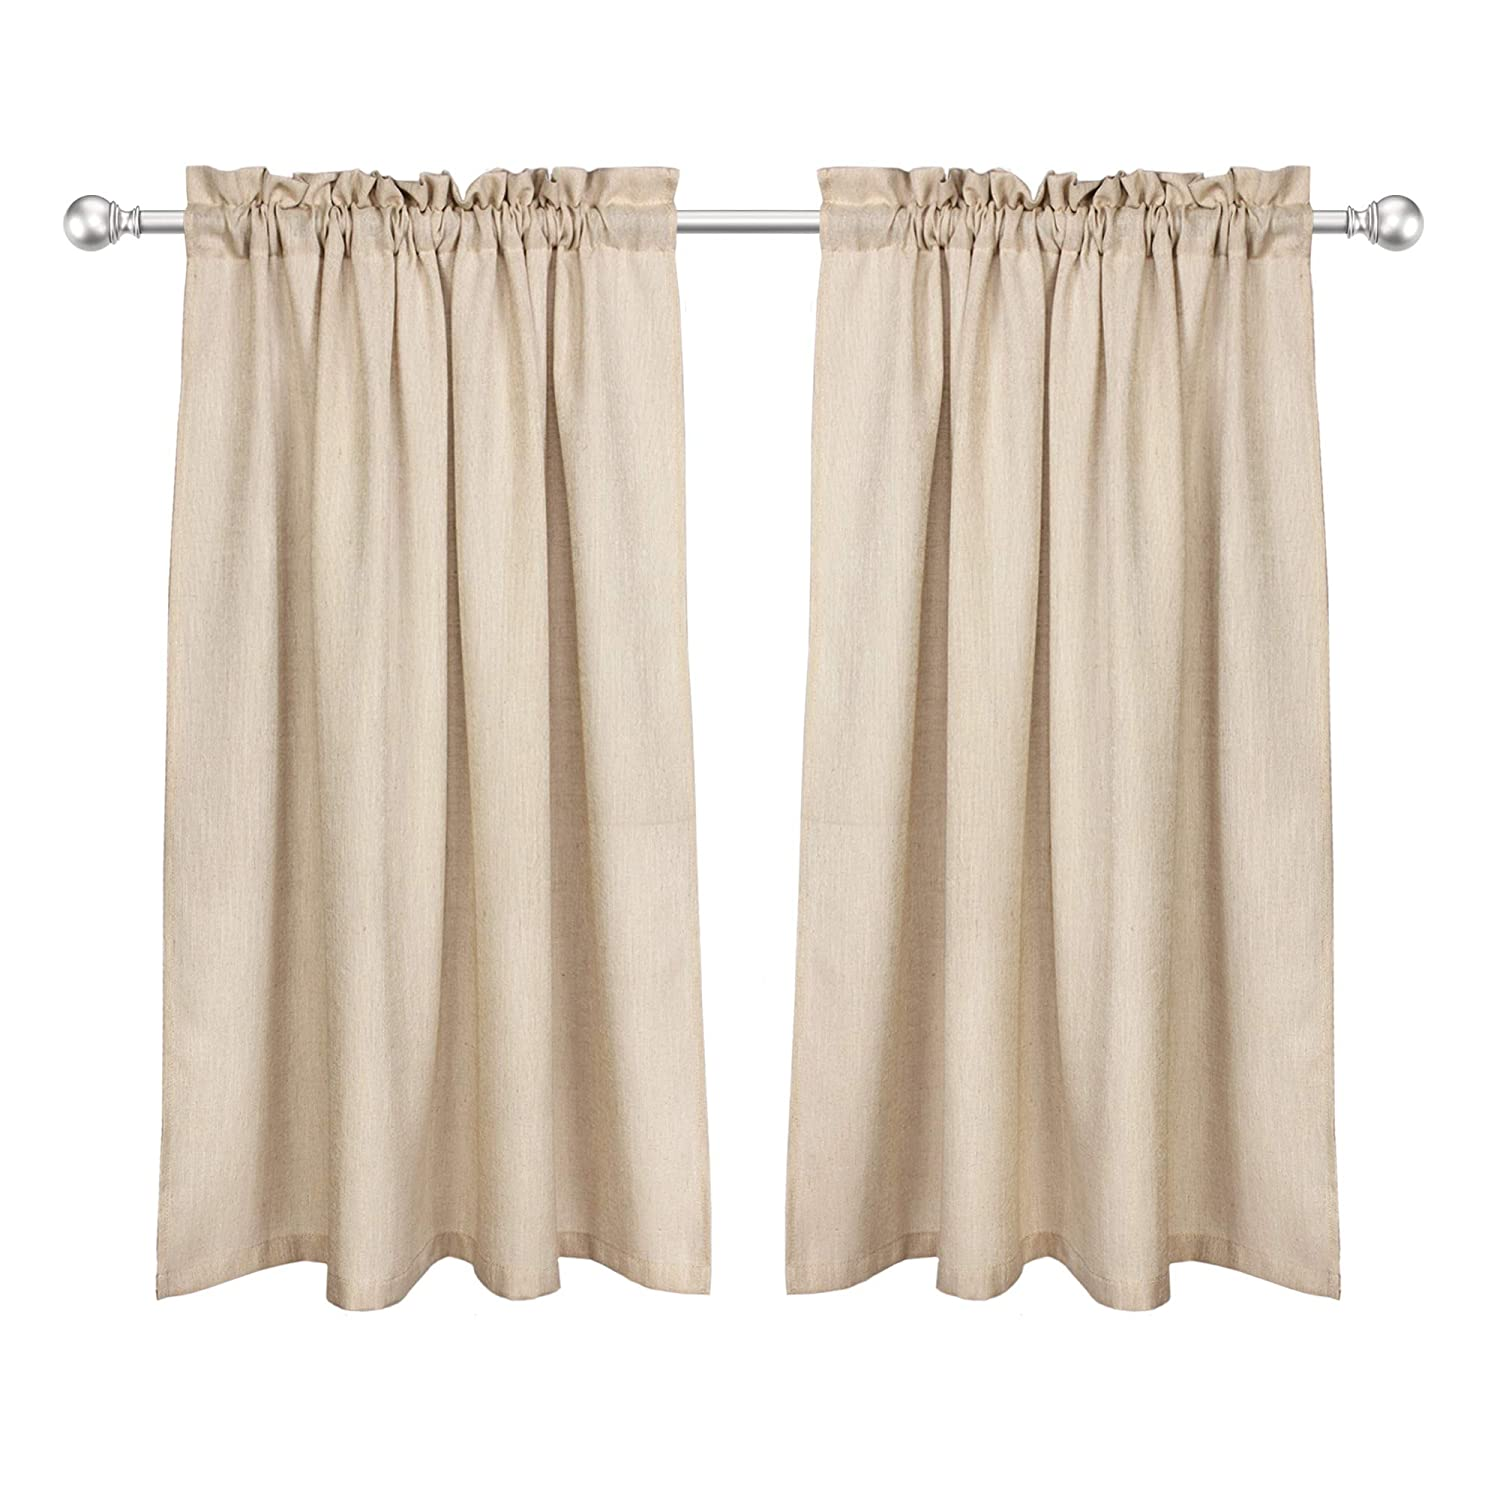 VOILYBIRD Barras Privacy Short Curtains for Kitchen Window 45 Inch Length Linen Textured Panels for Bathroom Rod Pockets (Tan, W42 x L45, 1 Pair)